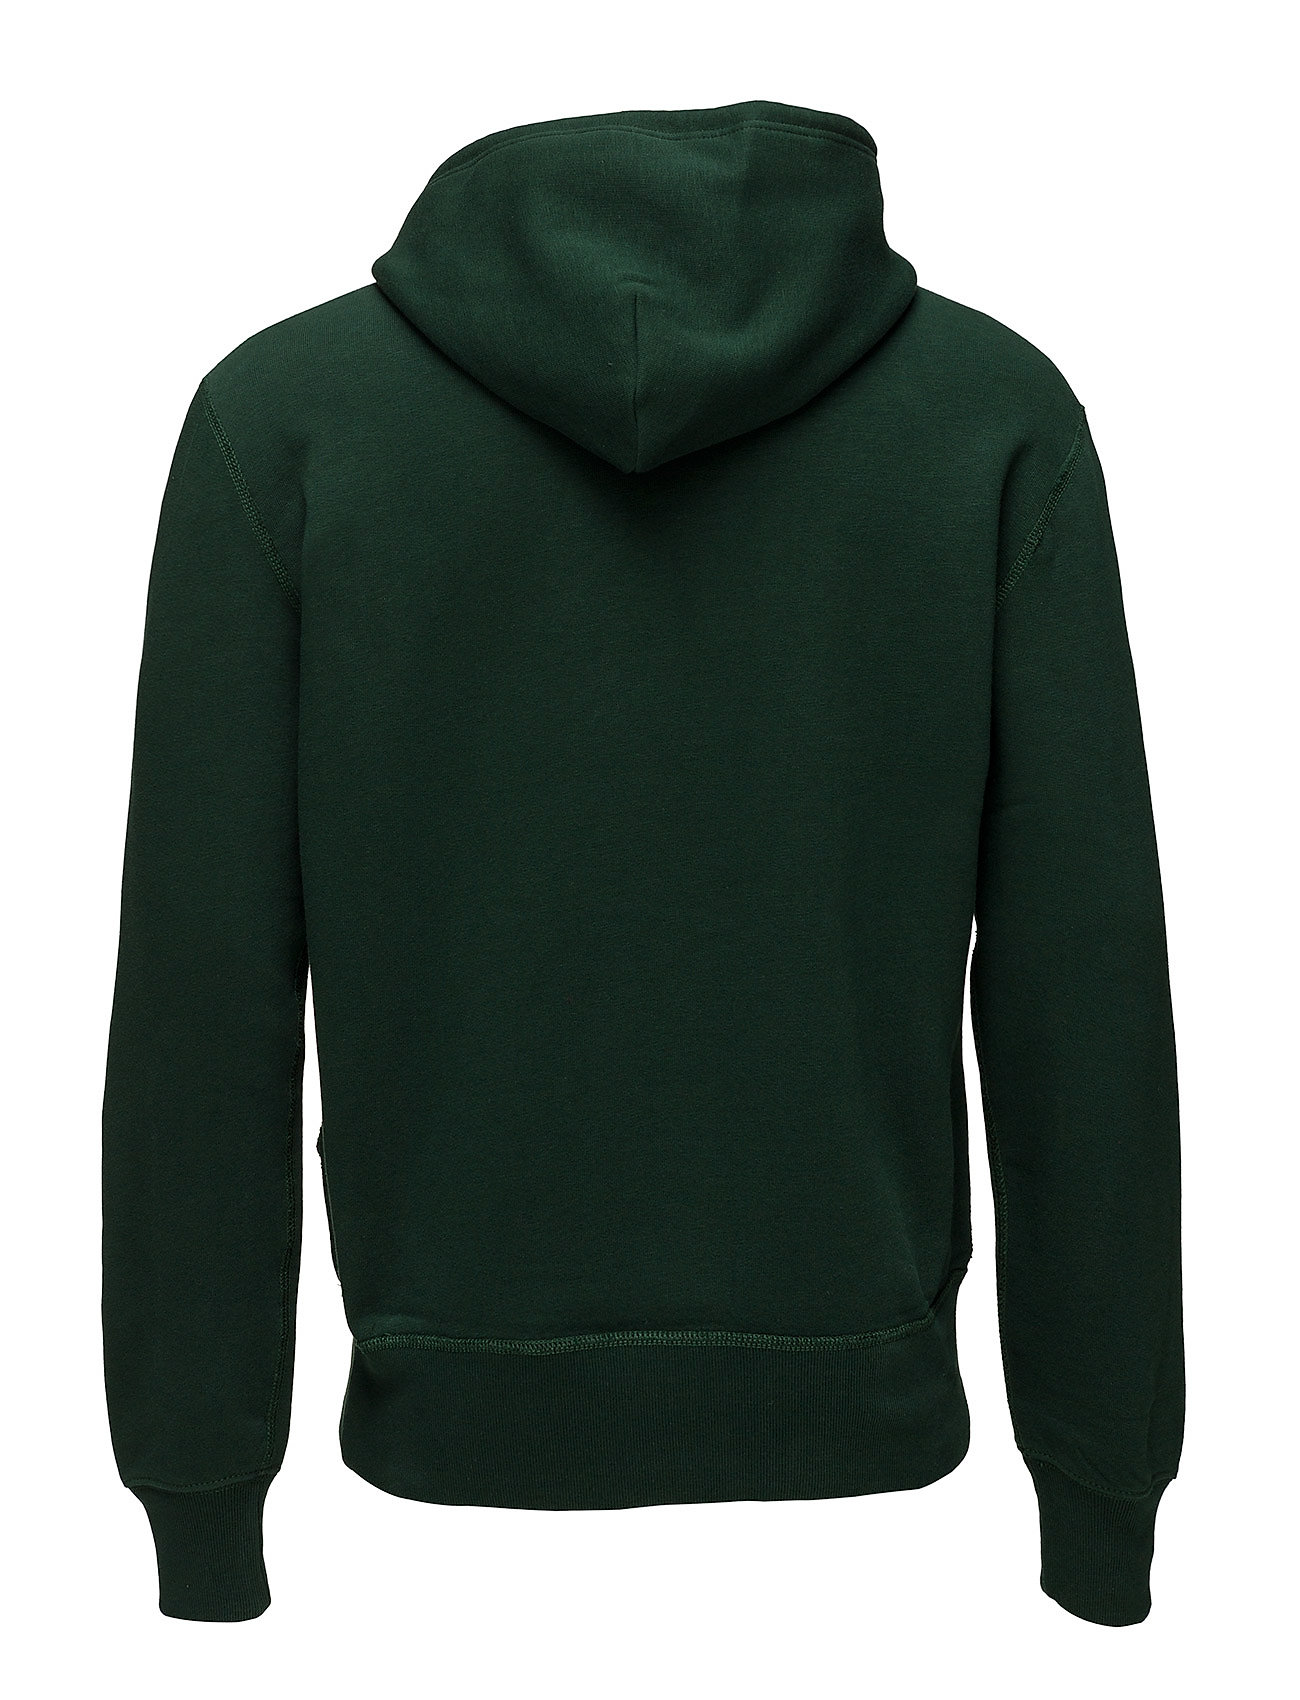 blend Hoodiecollege Lauren Cotton fleece Ralph GreenPolo O8n0wPXk